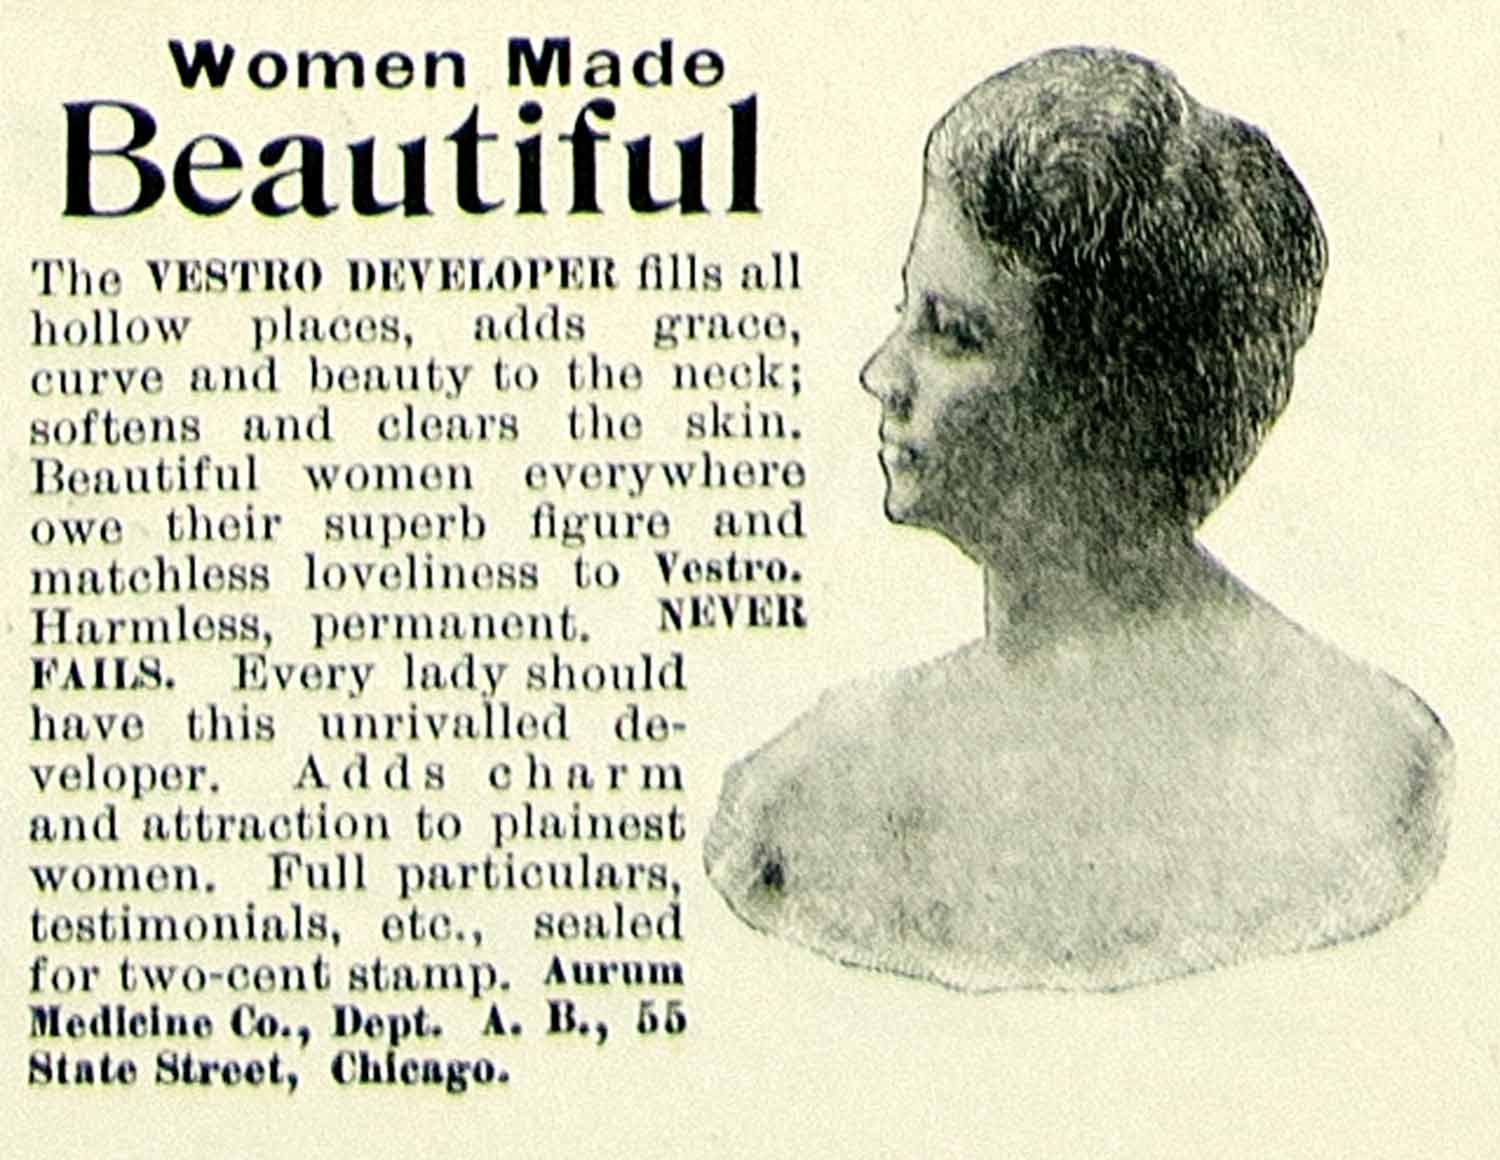 1899 Ad Aurum Medleine Company State Street Chicago Illinois Vestro Beauty COLL4